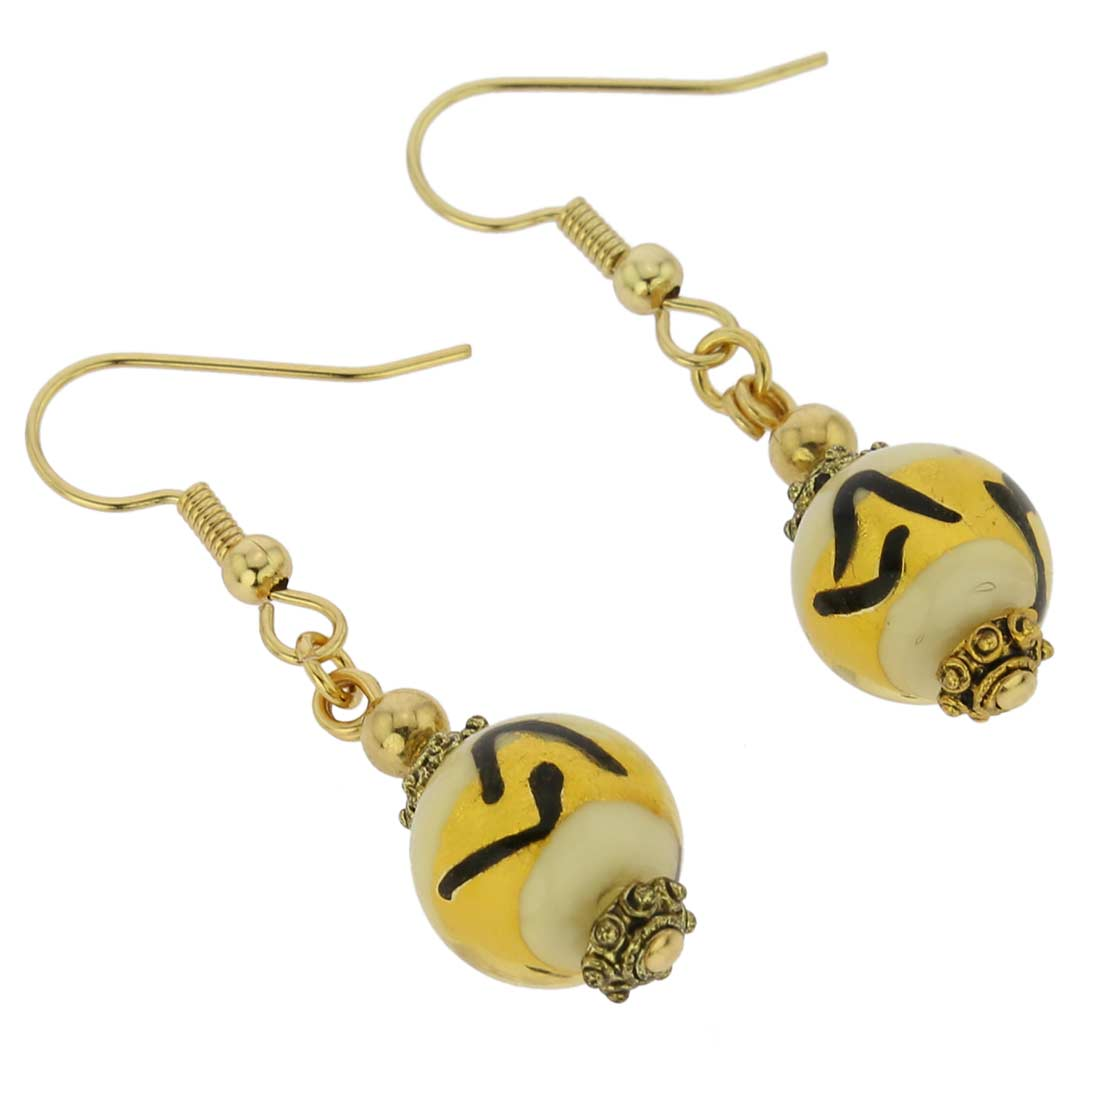 Antico Tesoro Balls Earrings - Ivory Gold